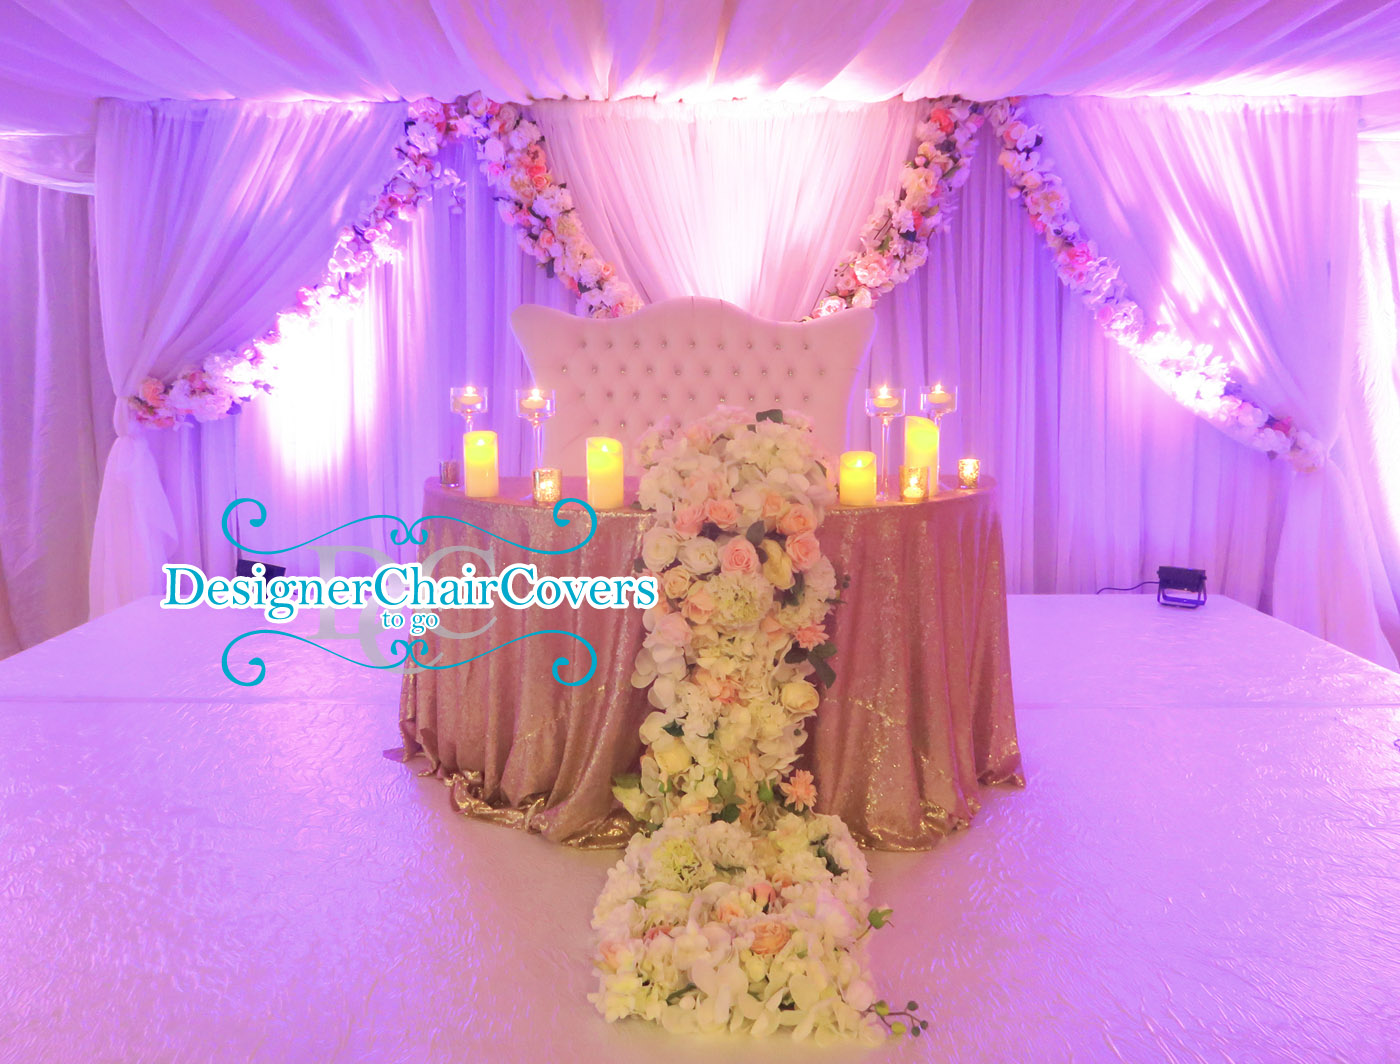 The sweetheart table with cascading flowers - Designer Chair Covers ...